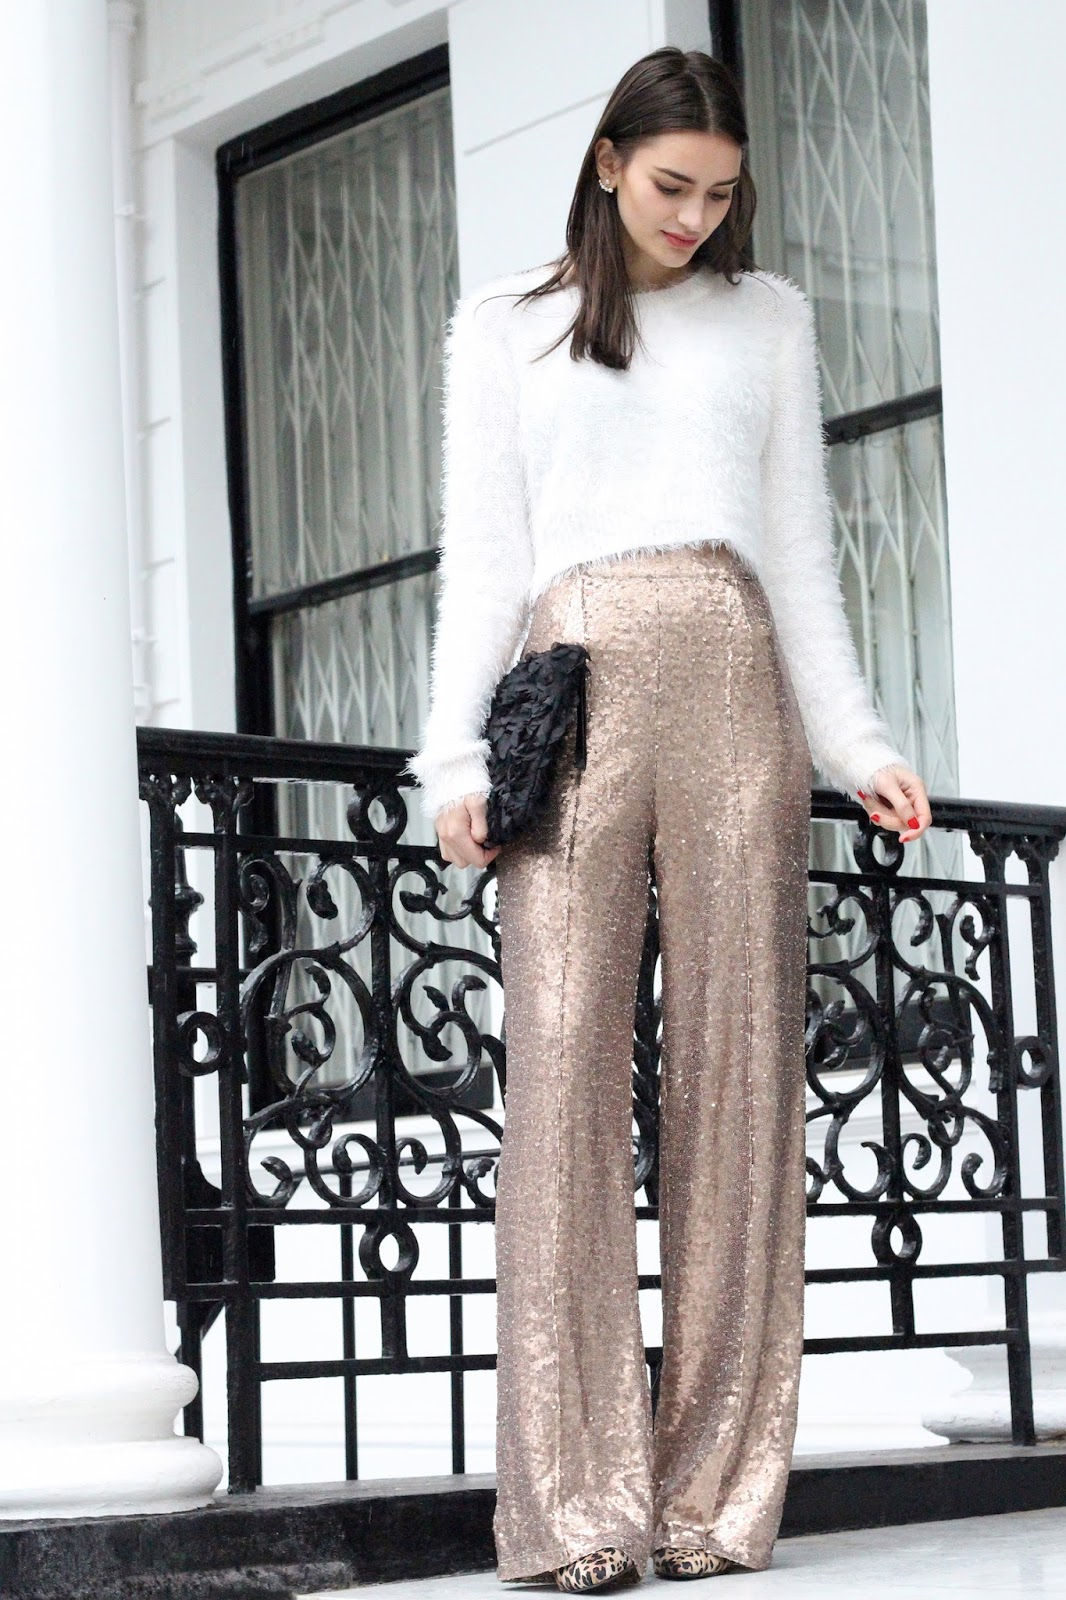 peexo fashion blogger wearing sequin playsuit from rare london